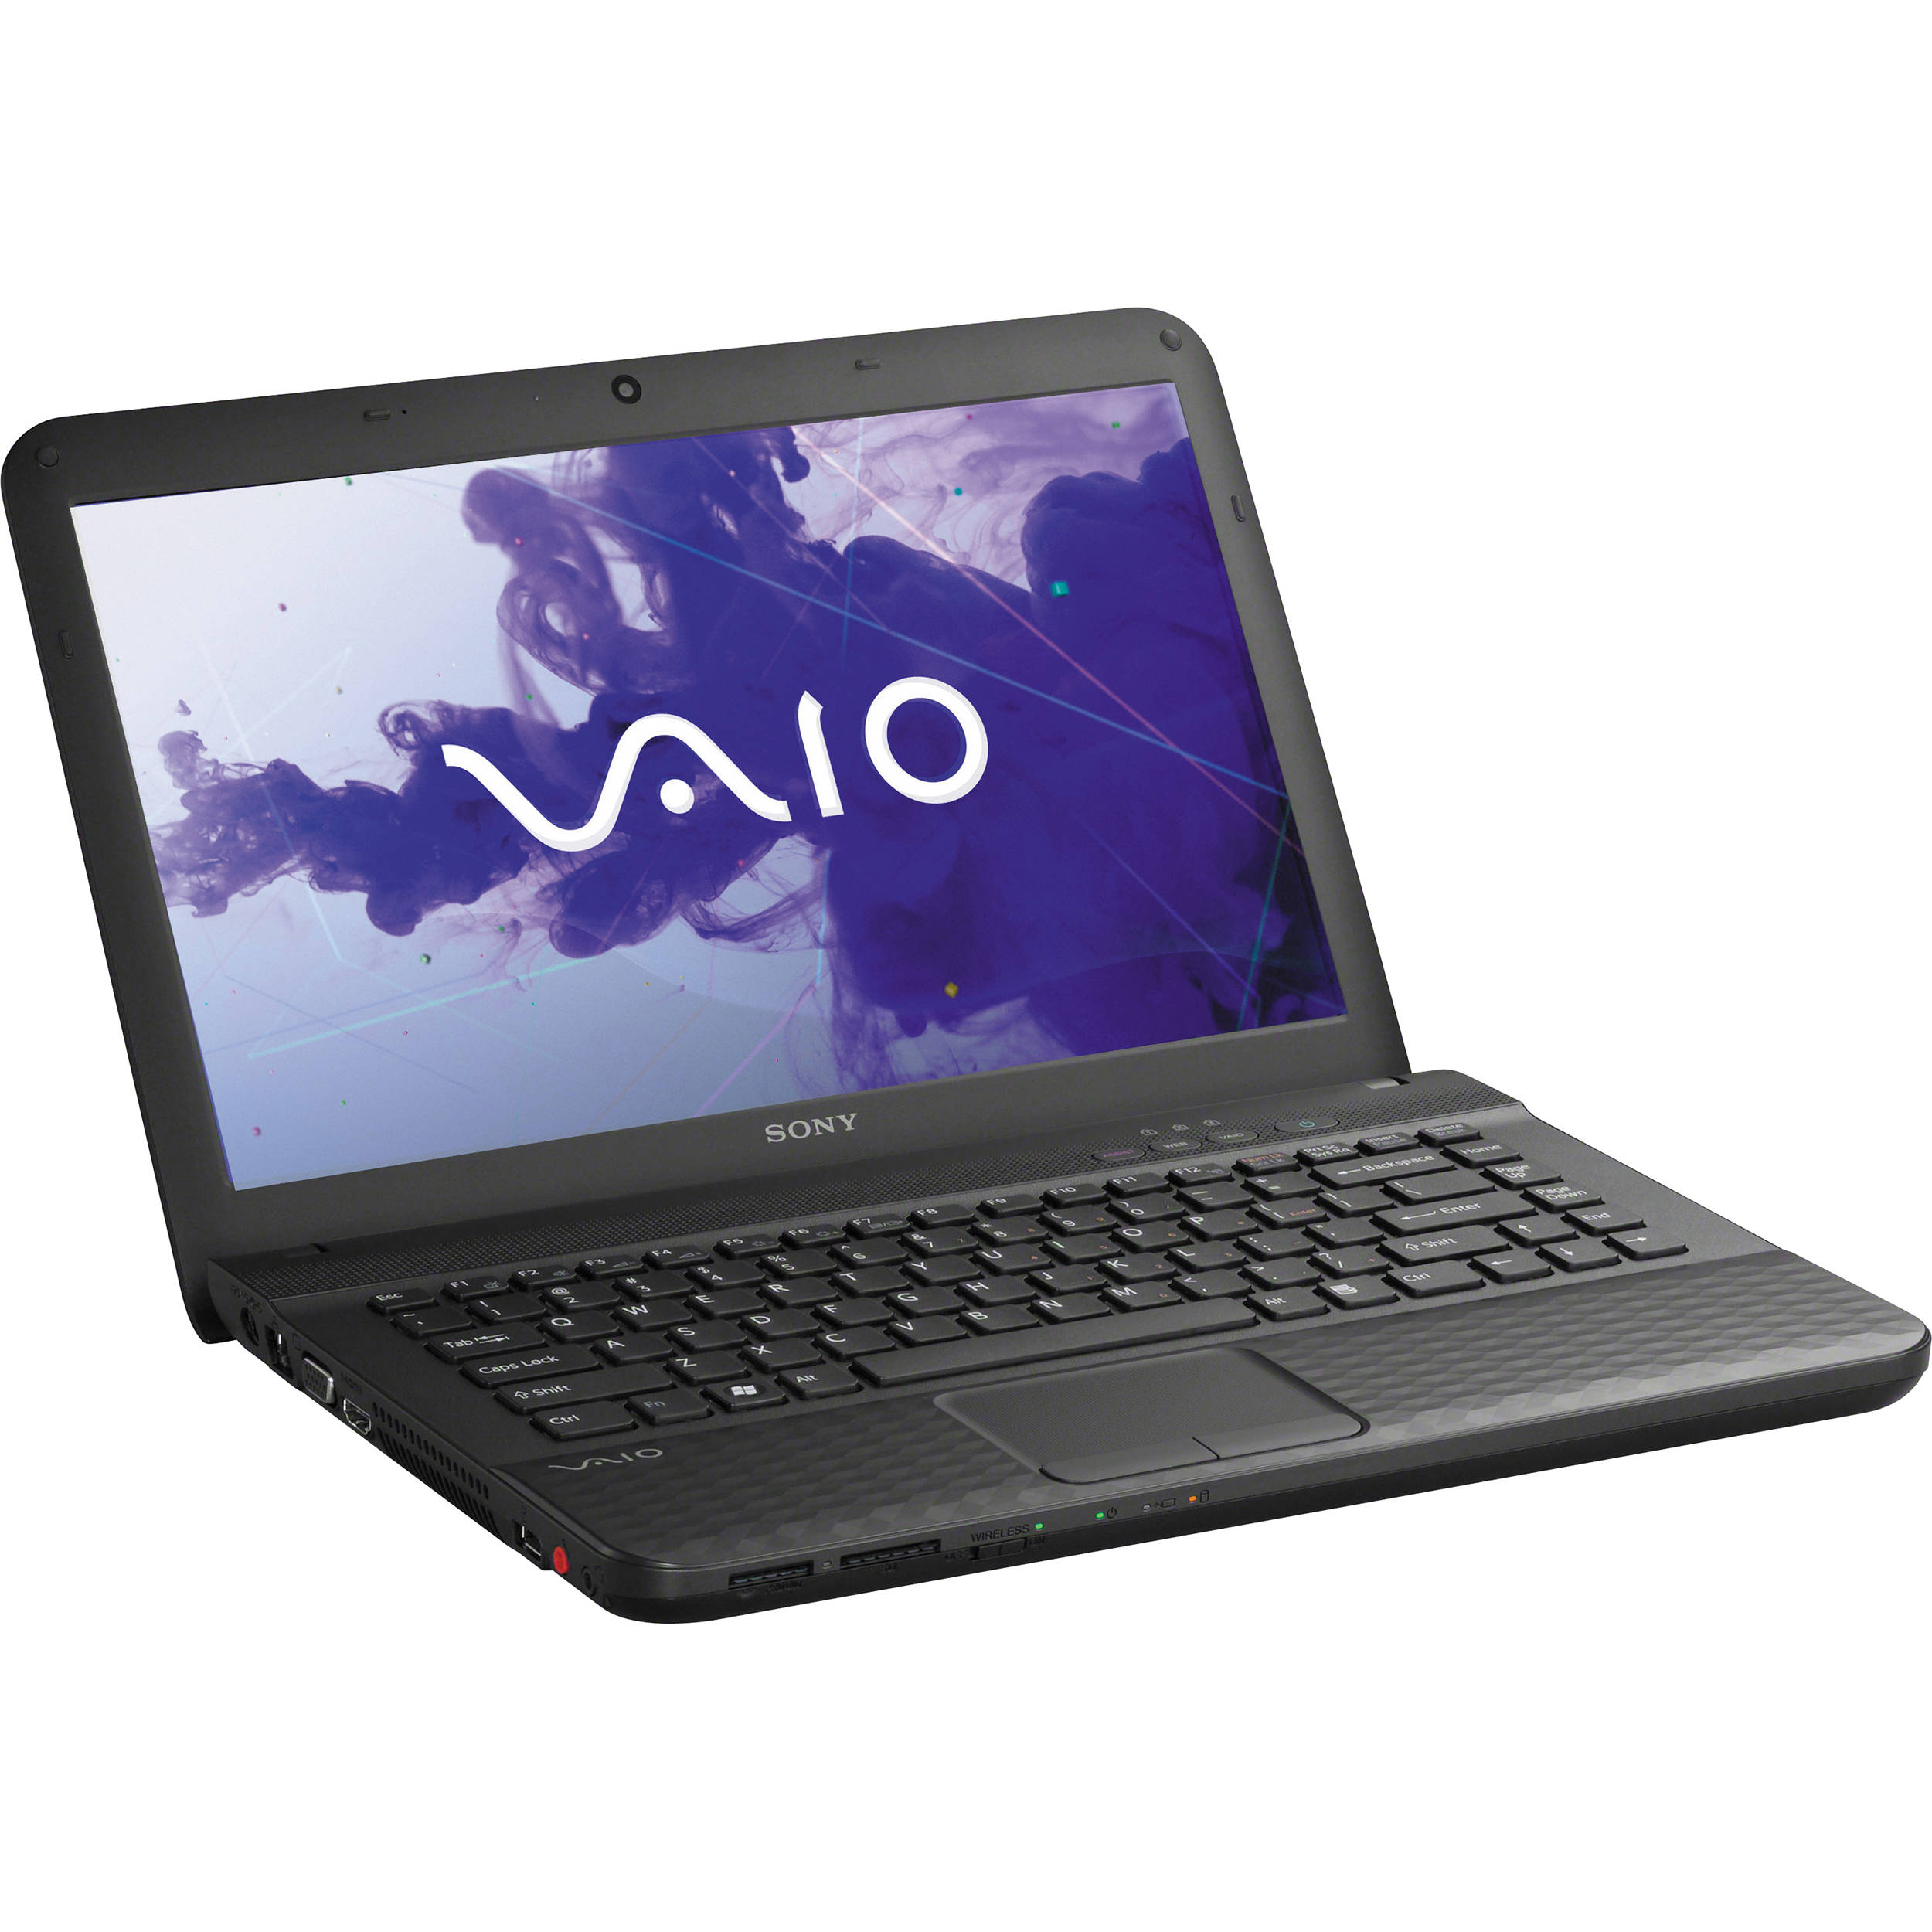 Sony Vaio VPCEG34FX/B Image Optimizer Treiber Windows 7